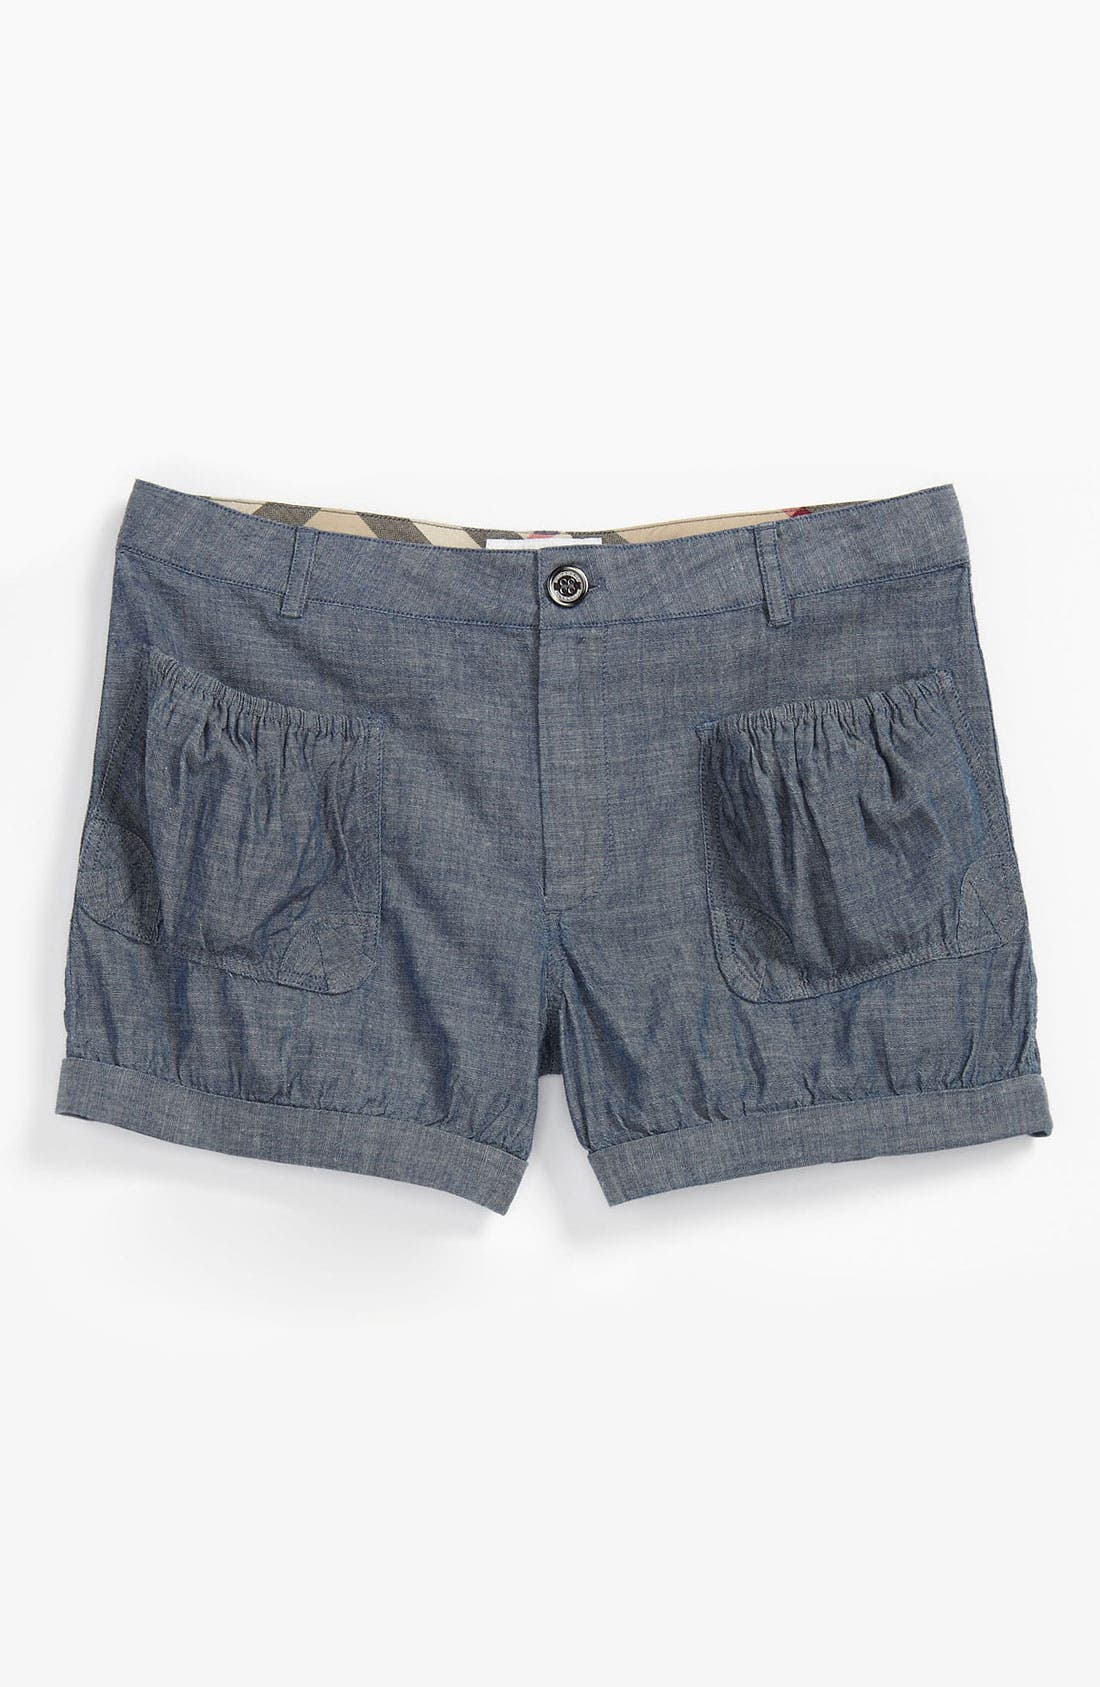 Alternate Image 1 Selected - Burberry 'Palma' Shorts (Little Girls & Big Girls)